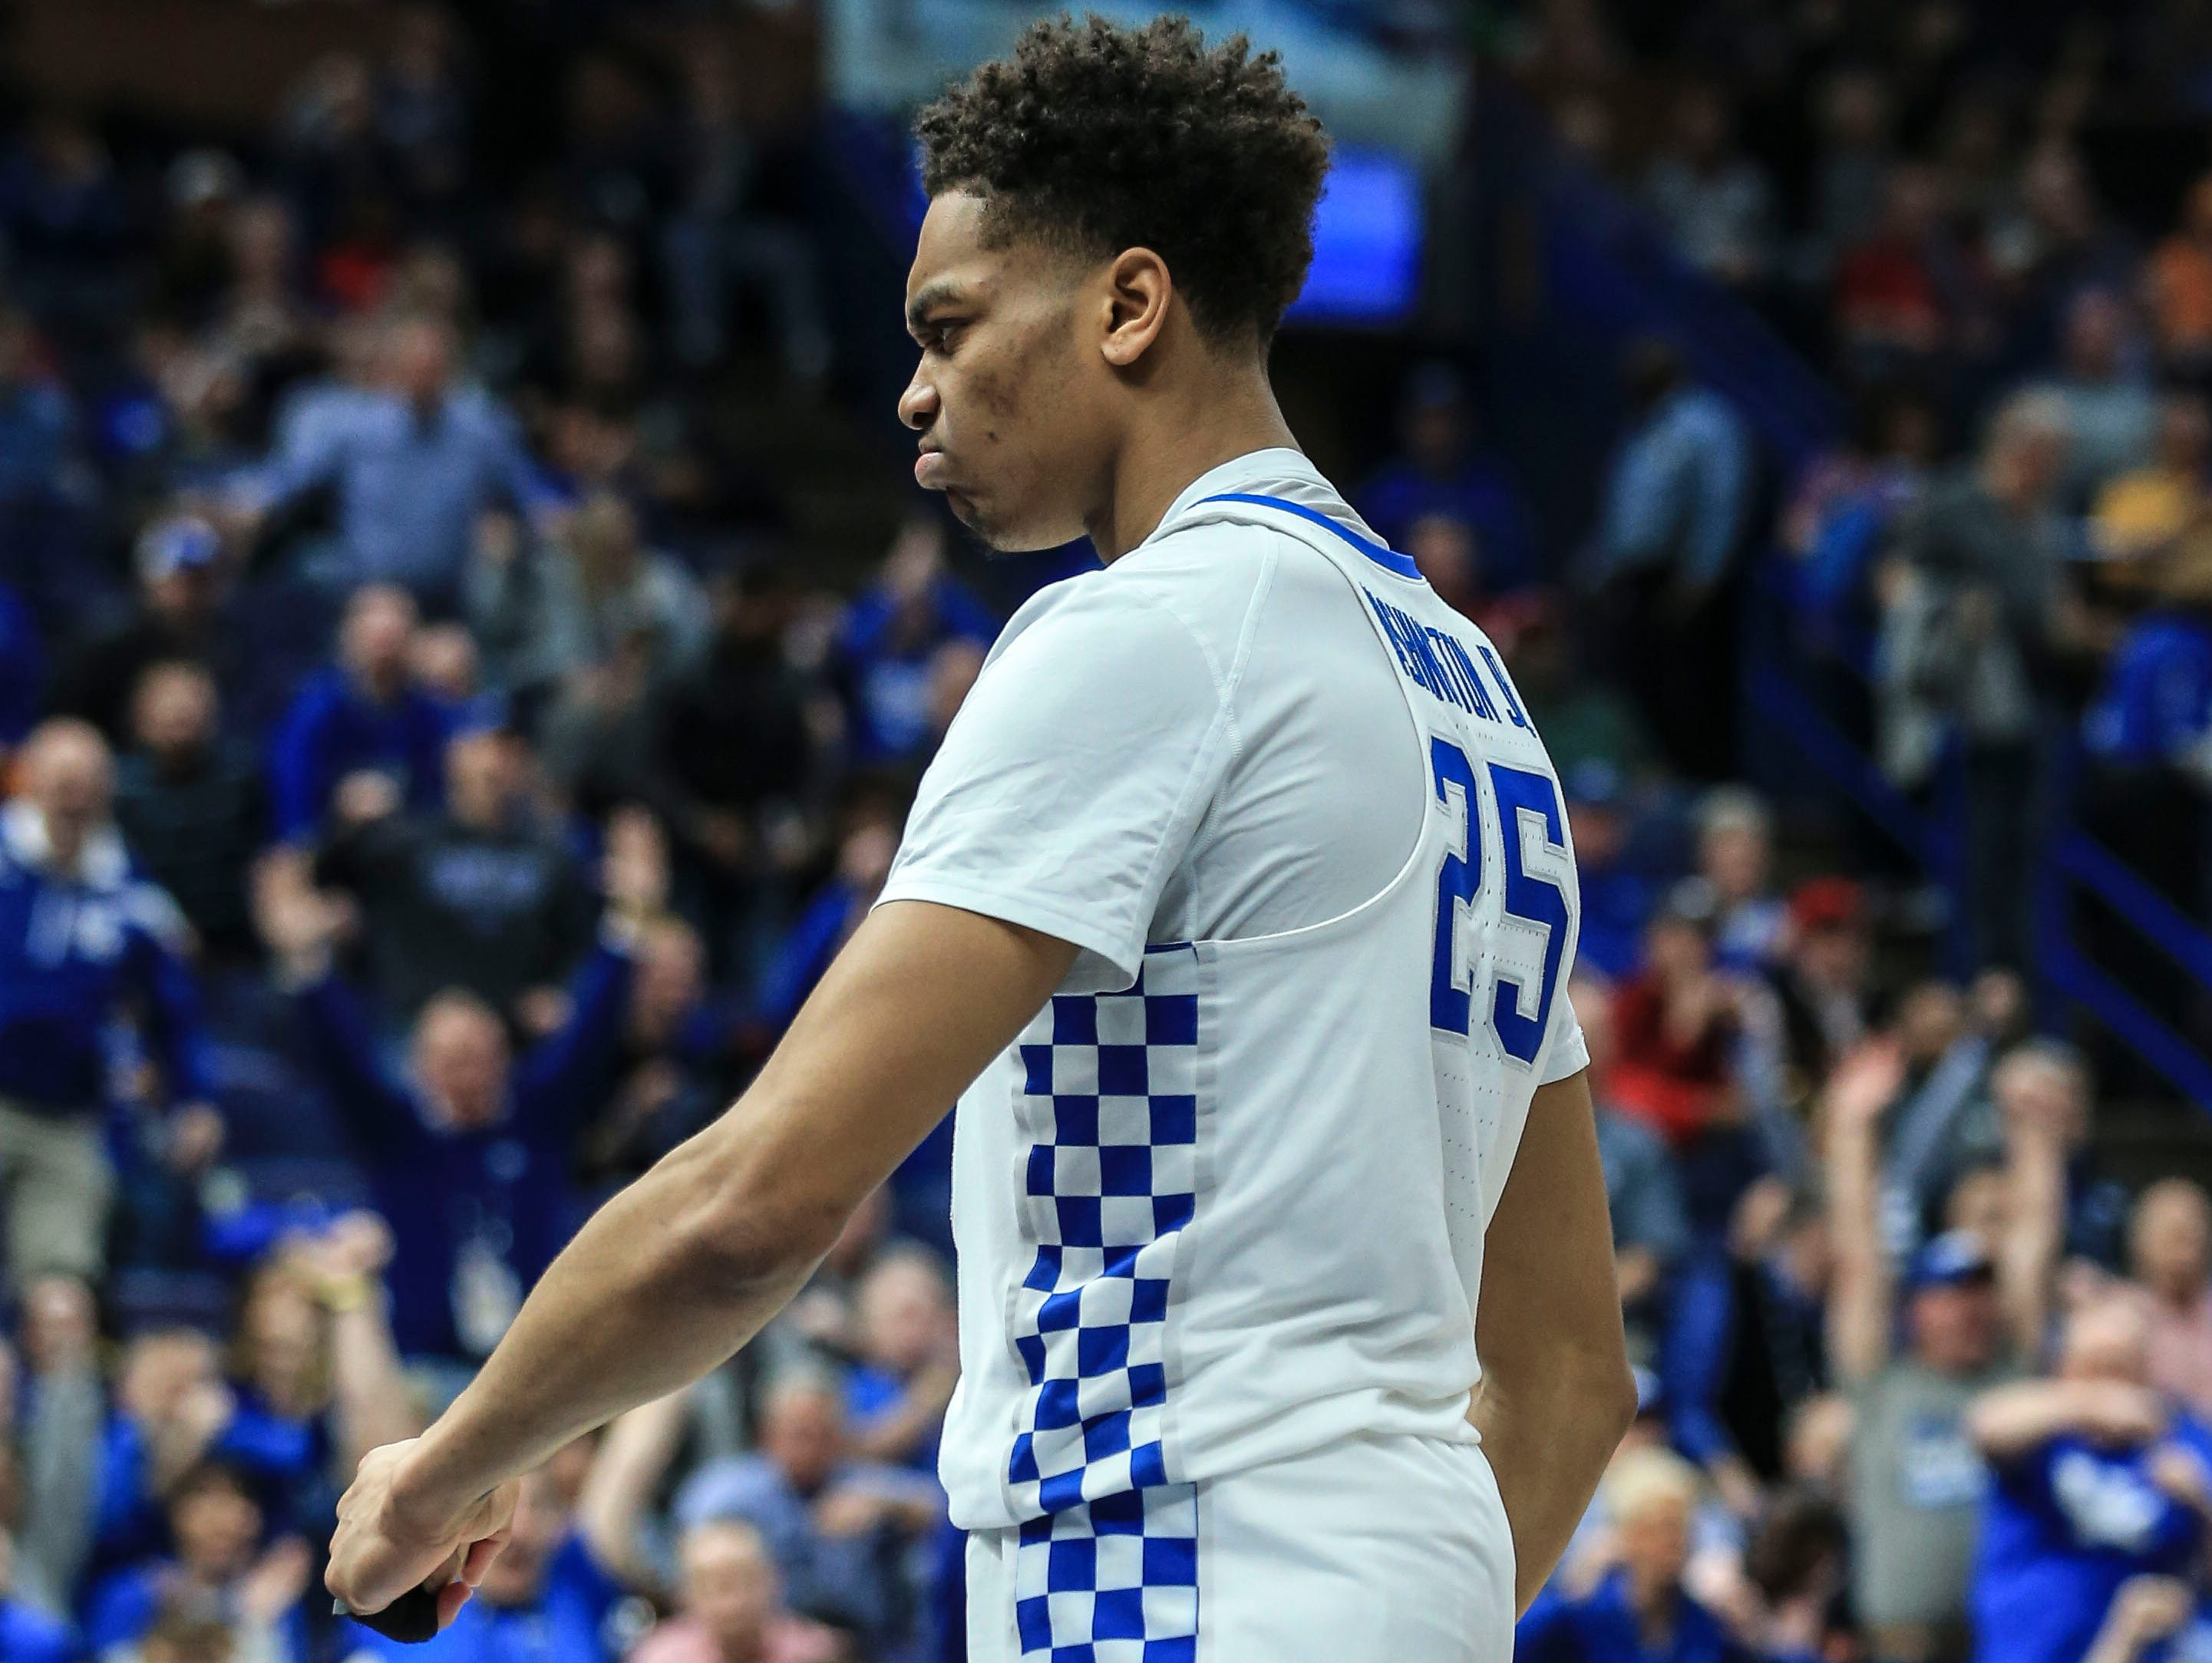 Kentucky's PJ Washington reacts after he slams down two in the first half against Alabama during Saturday's semifinal SEC Tournament game in St. Louis. March 10, 2018